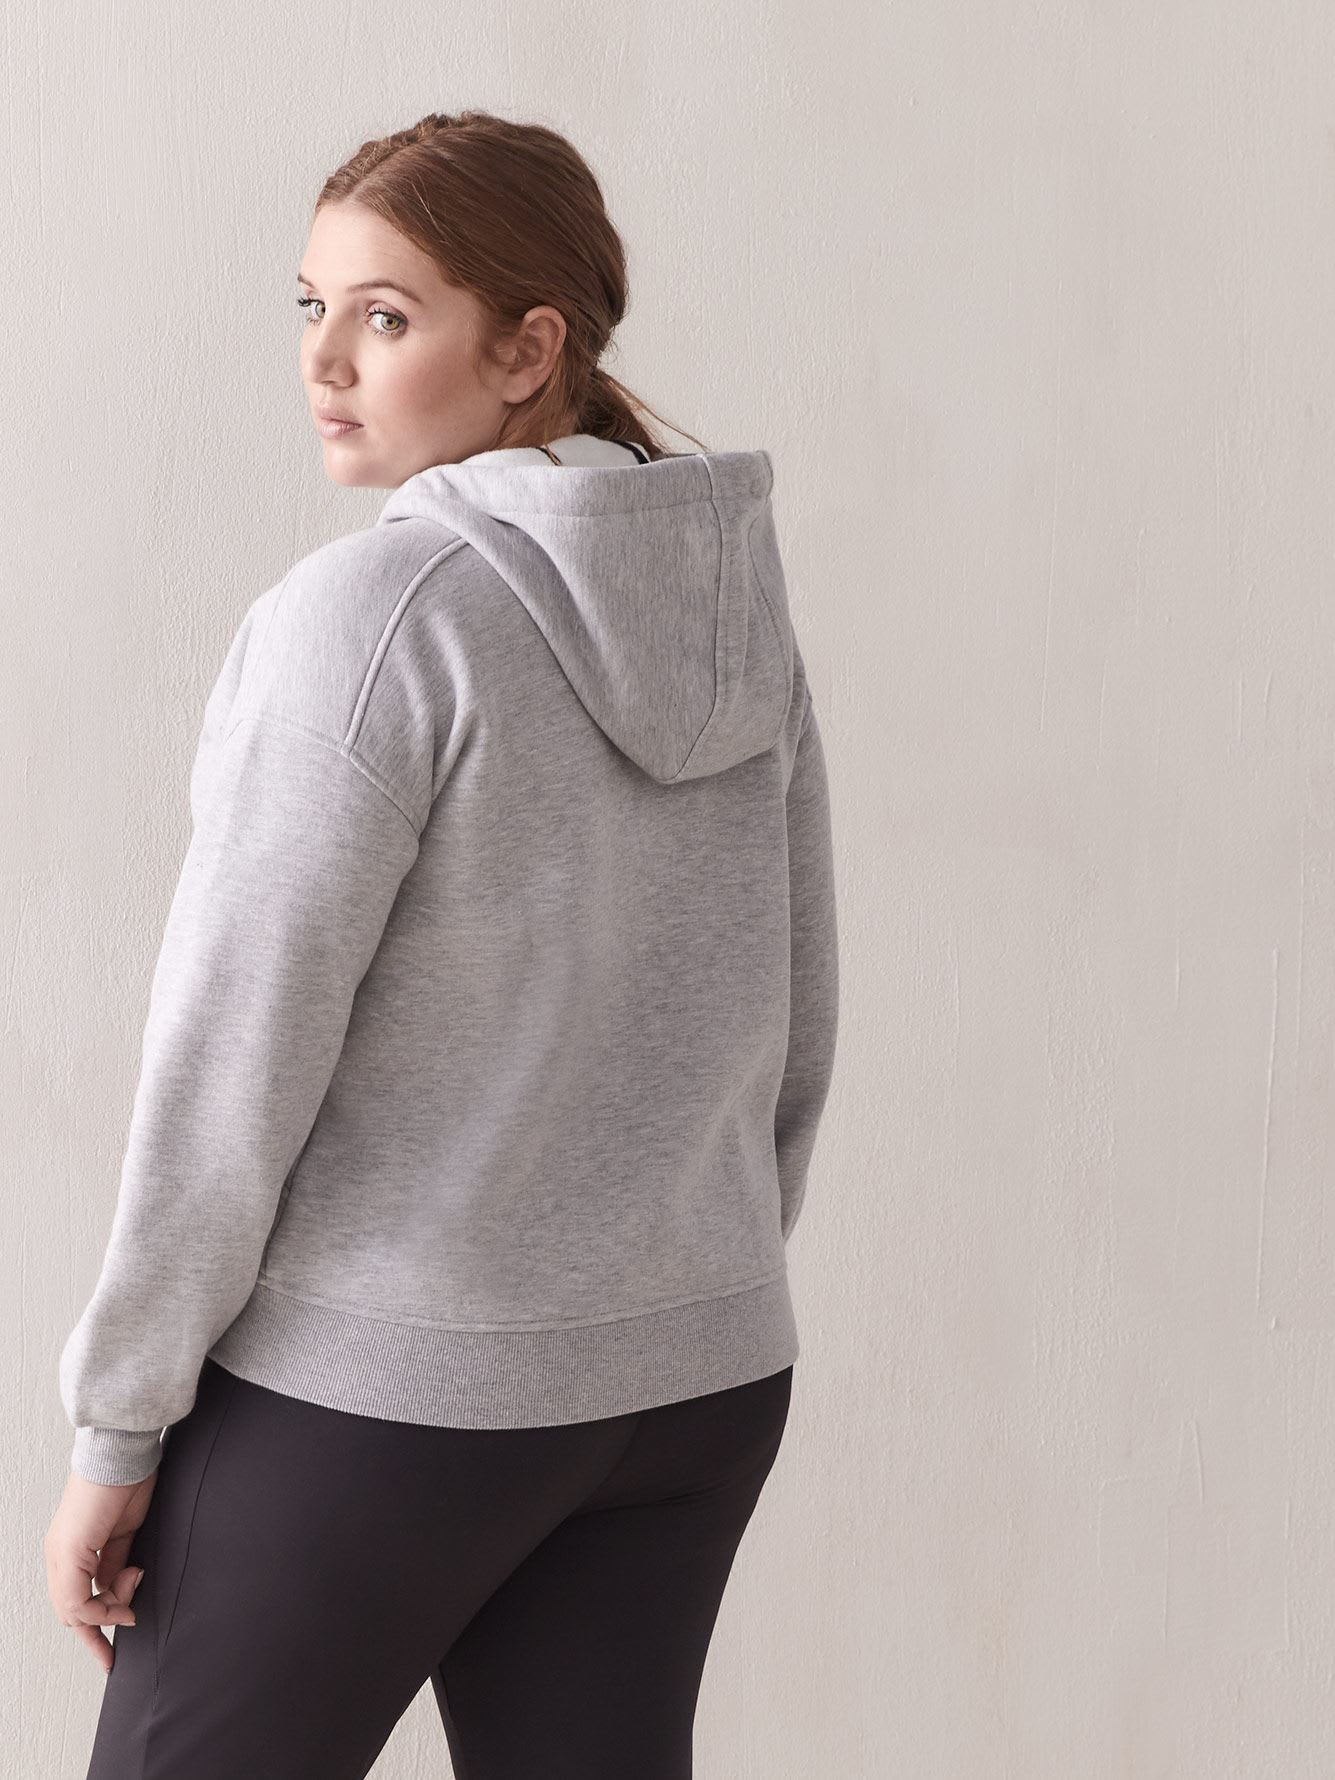 Oversized Fleece Zip-Up Hoodie - ActiveZone